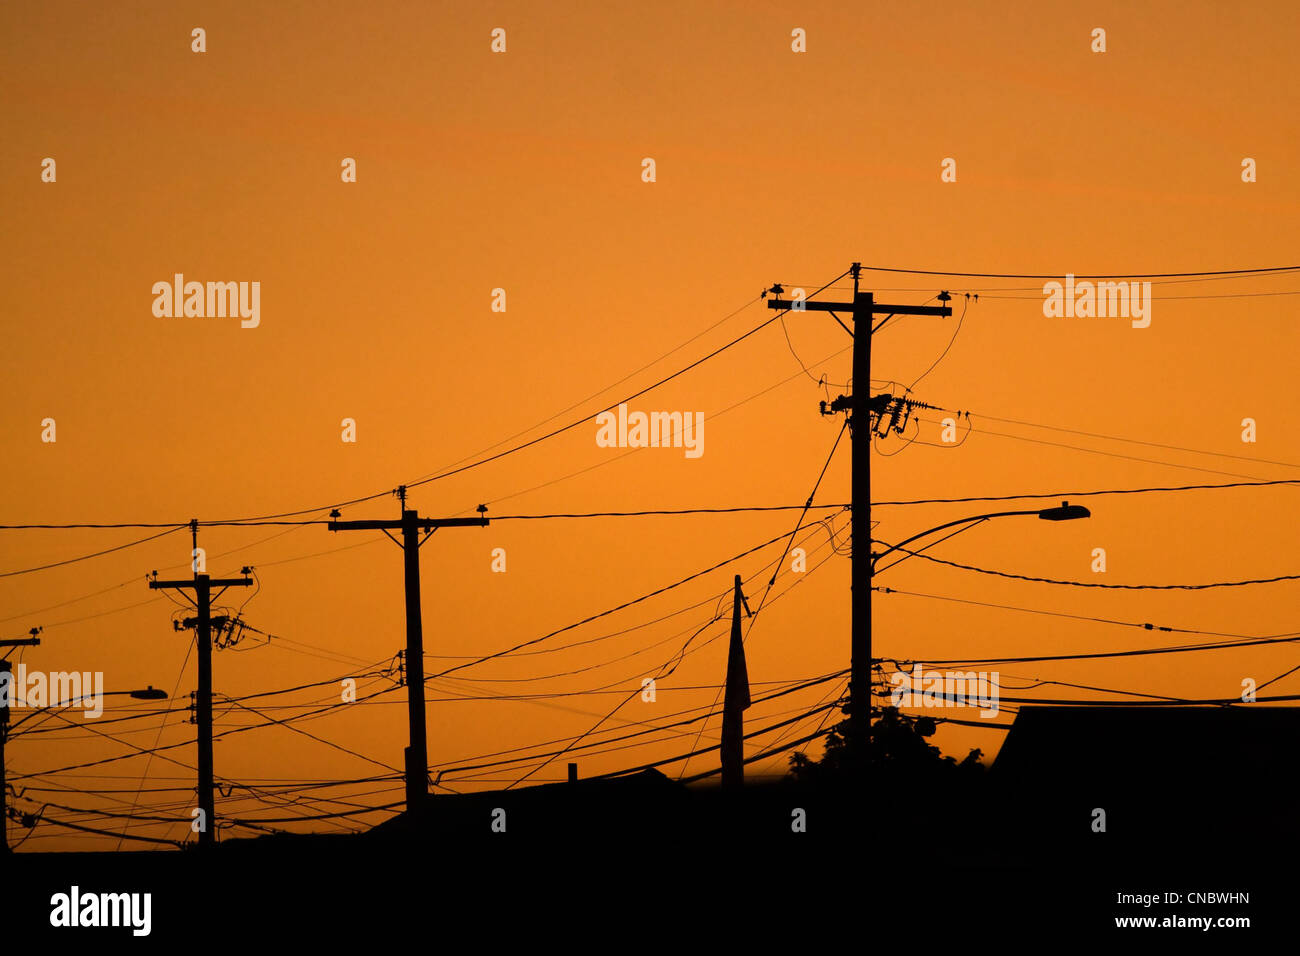 Silhouettes of the power lines and wires in a residential neighborhood backlit by the evening sky. - Stock Image